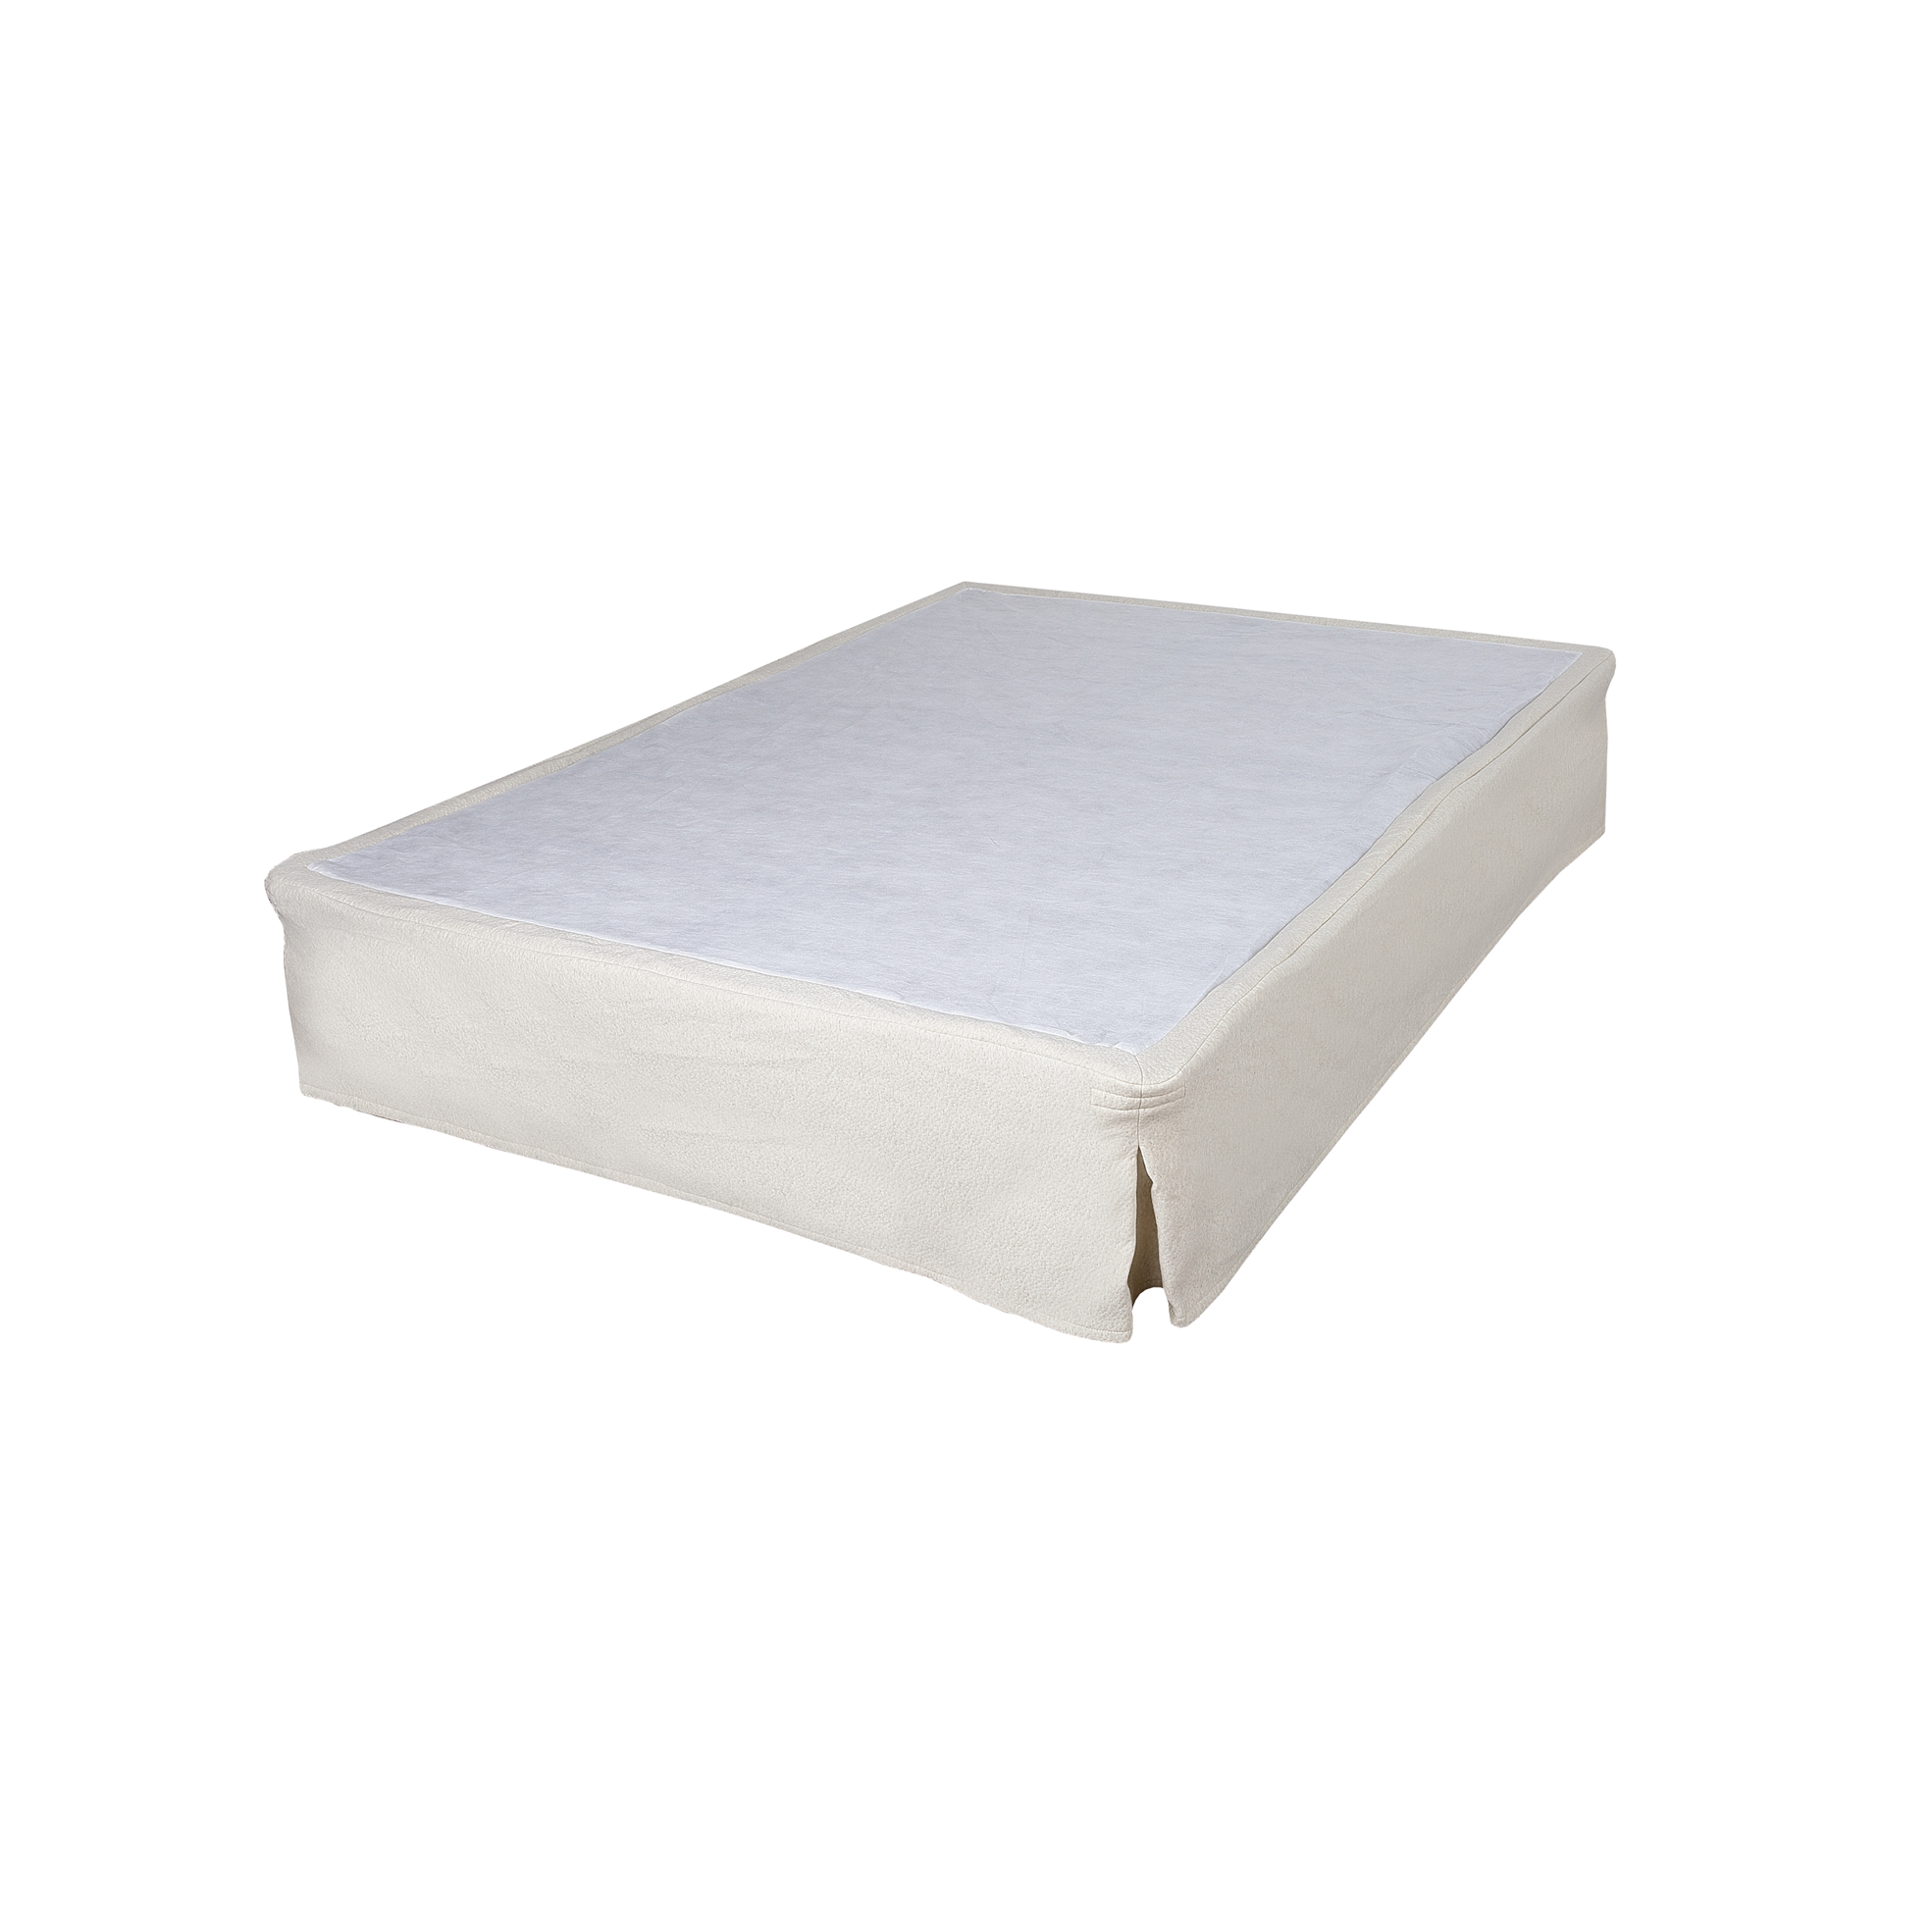 frame myinflatablebed mattress try frames amazing top should that in image com air featured you